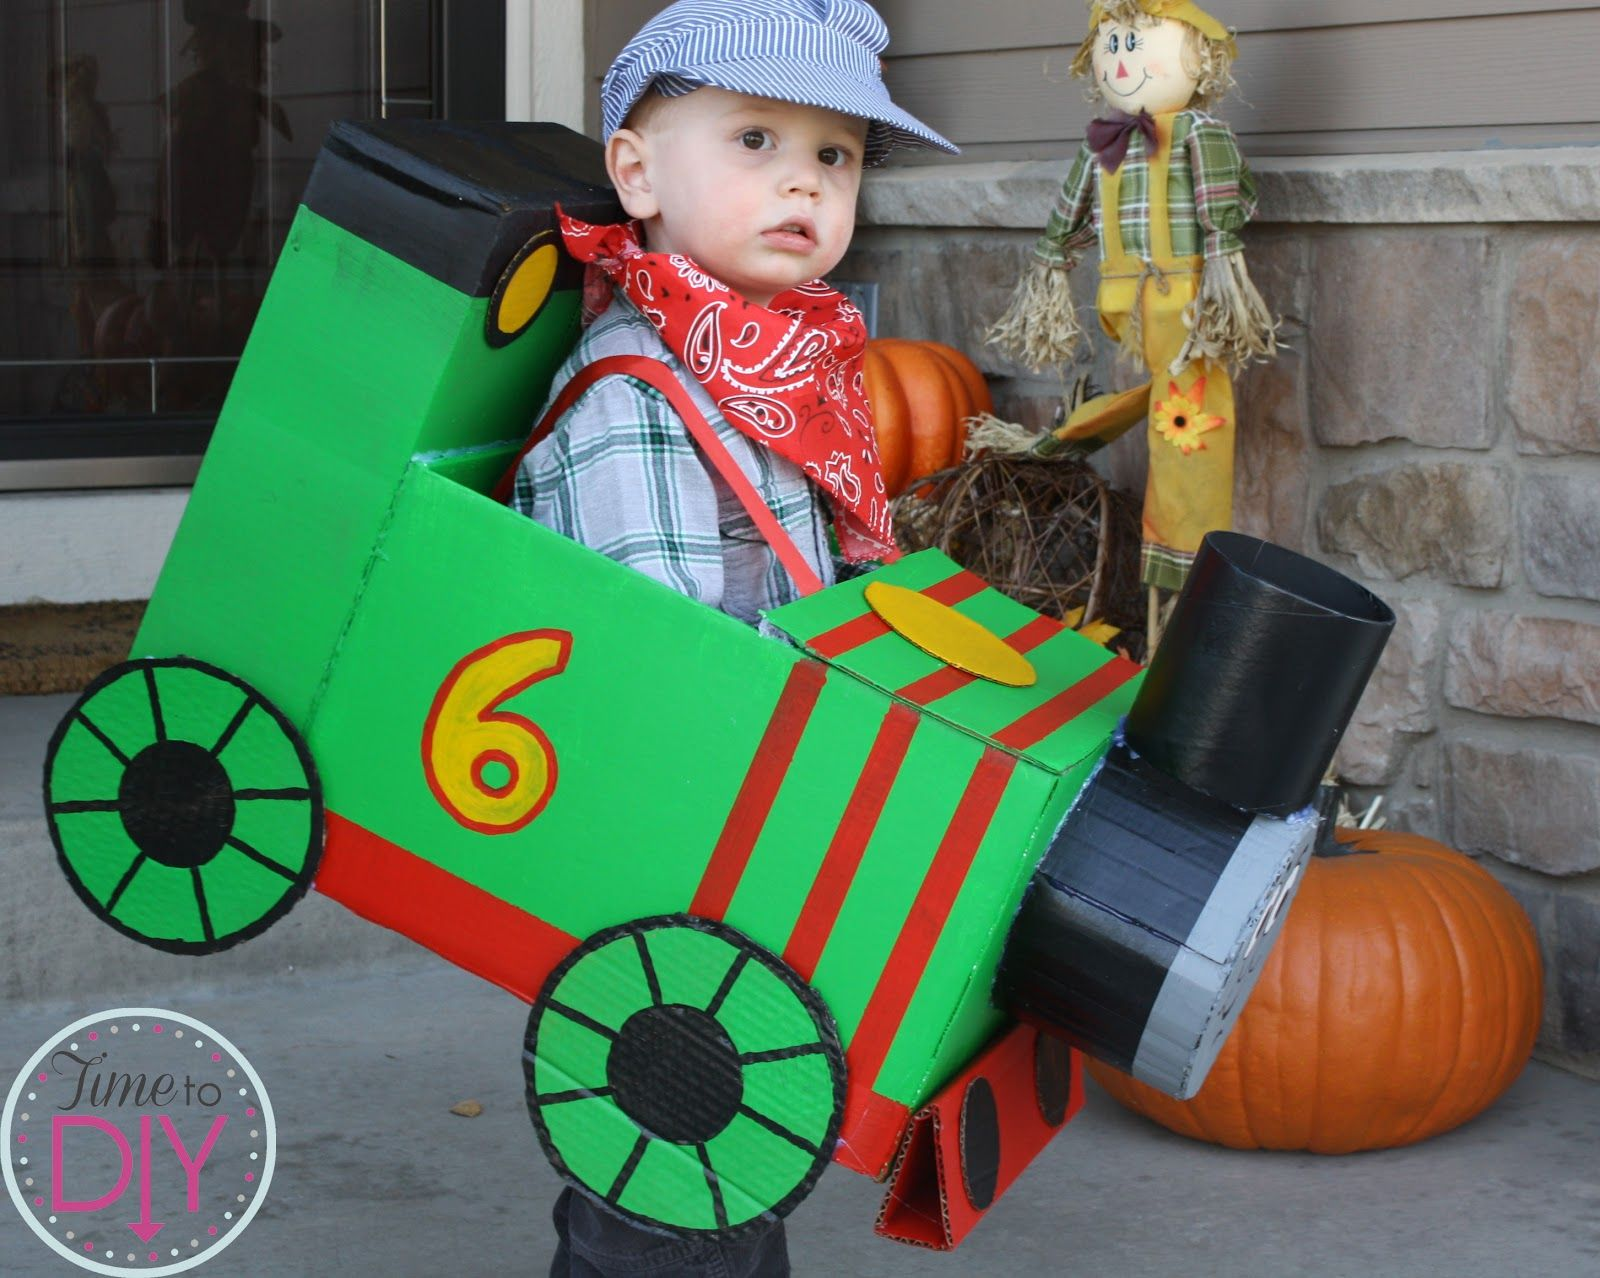 Time To Diy Train Percy Halloween Costume Thomas The Train Costume Diy Halloween Costumes For Kids Halloween Costumes For Kids